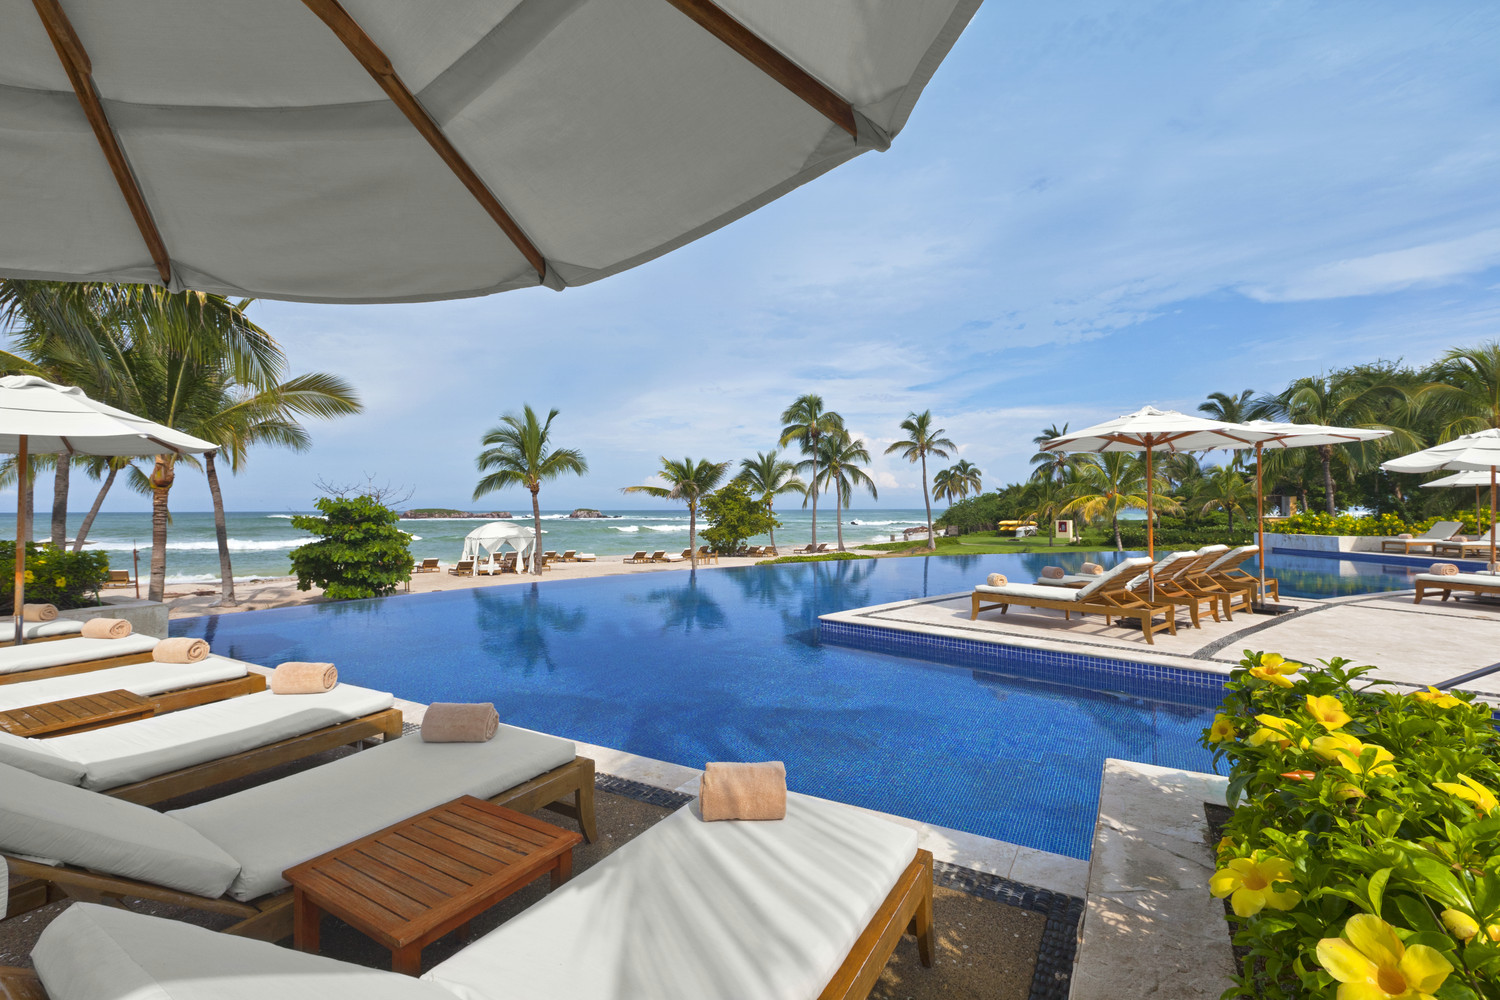 Poolside at the uber elegant St. Regis Hotel in Riviera Nayarit, Mexico